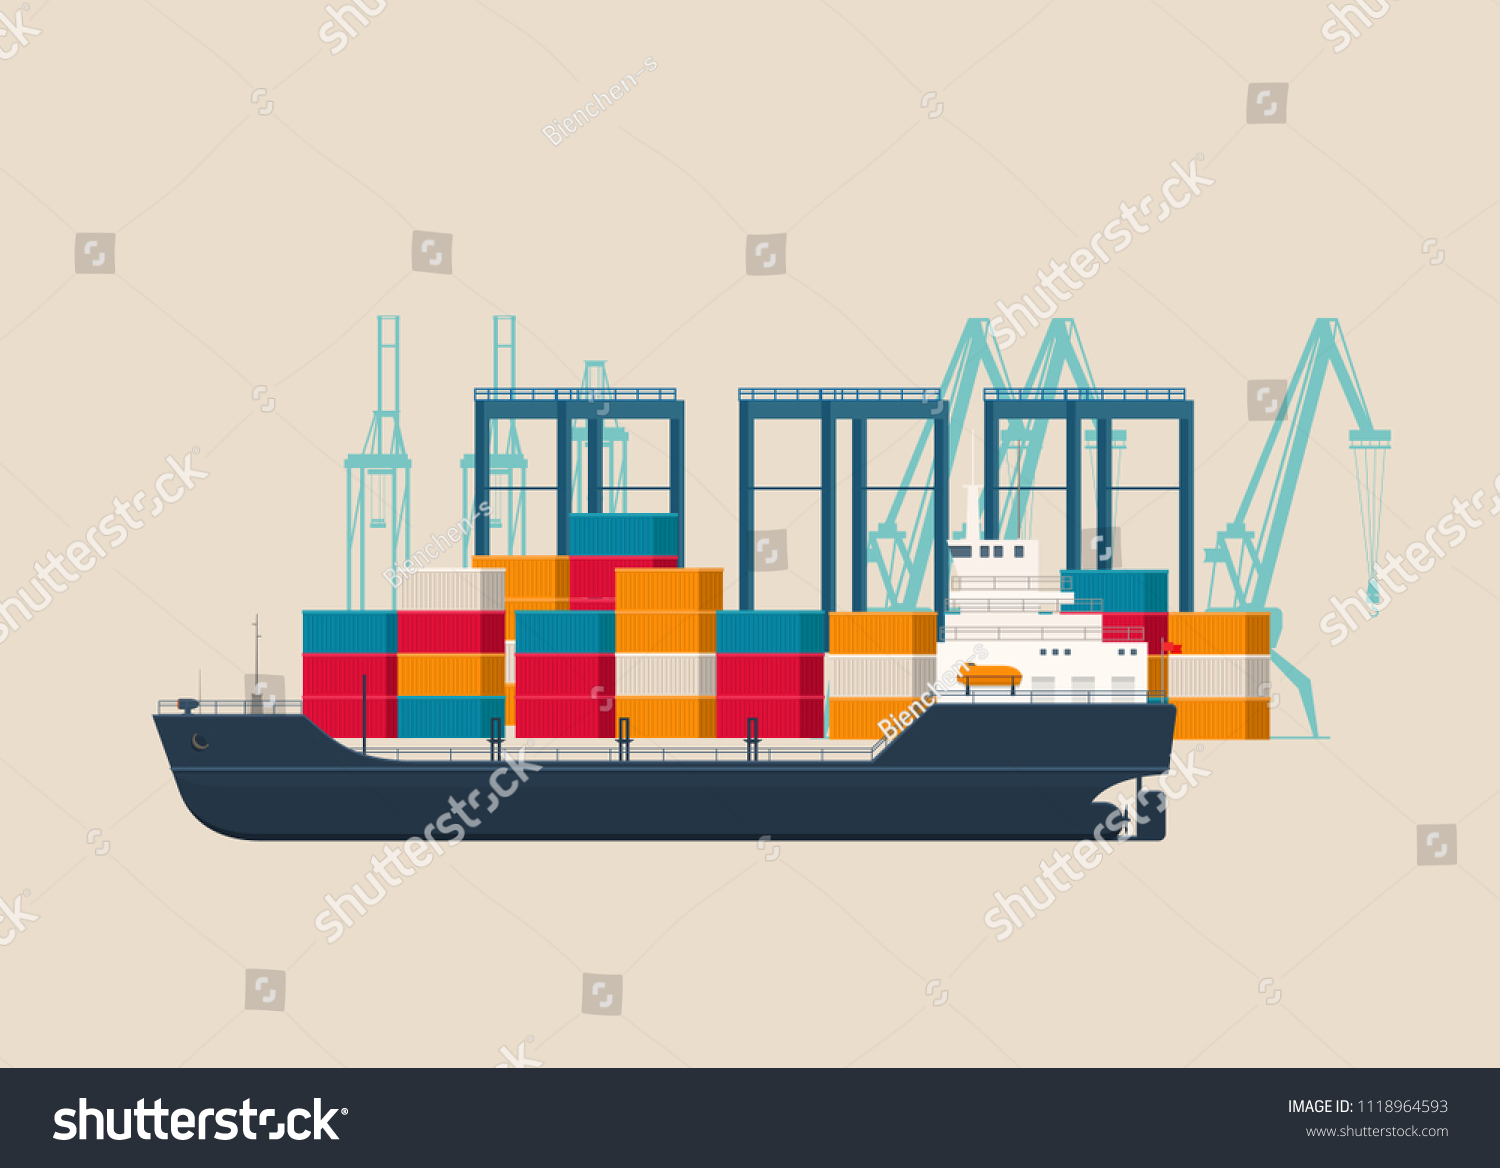 hight resolution of empty cargo ship under crane bridge in the container terminal logistics and transportation concept